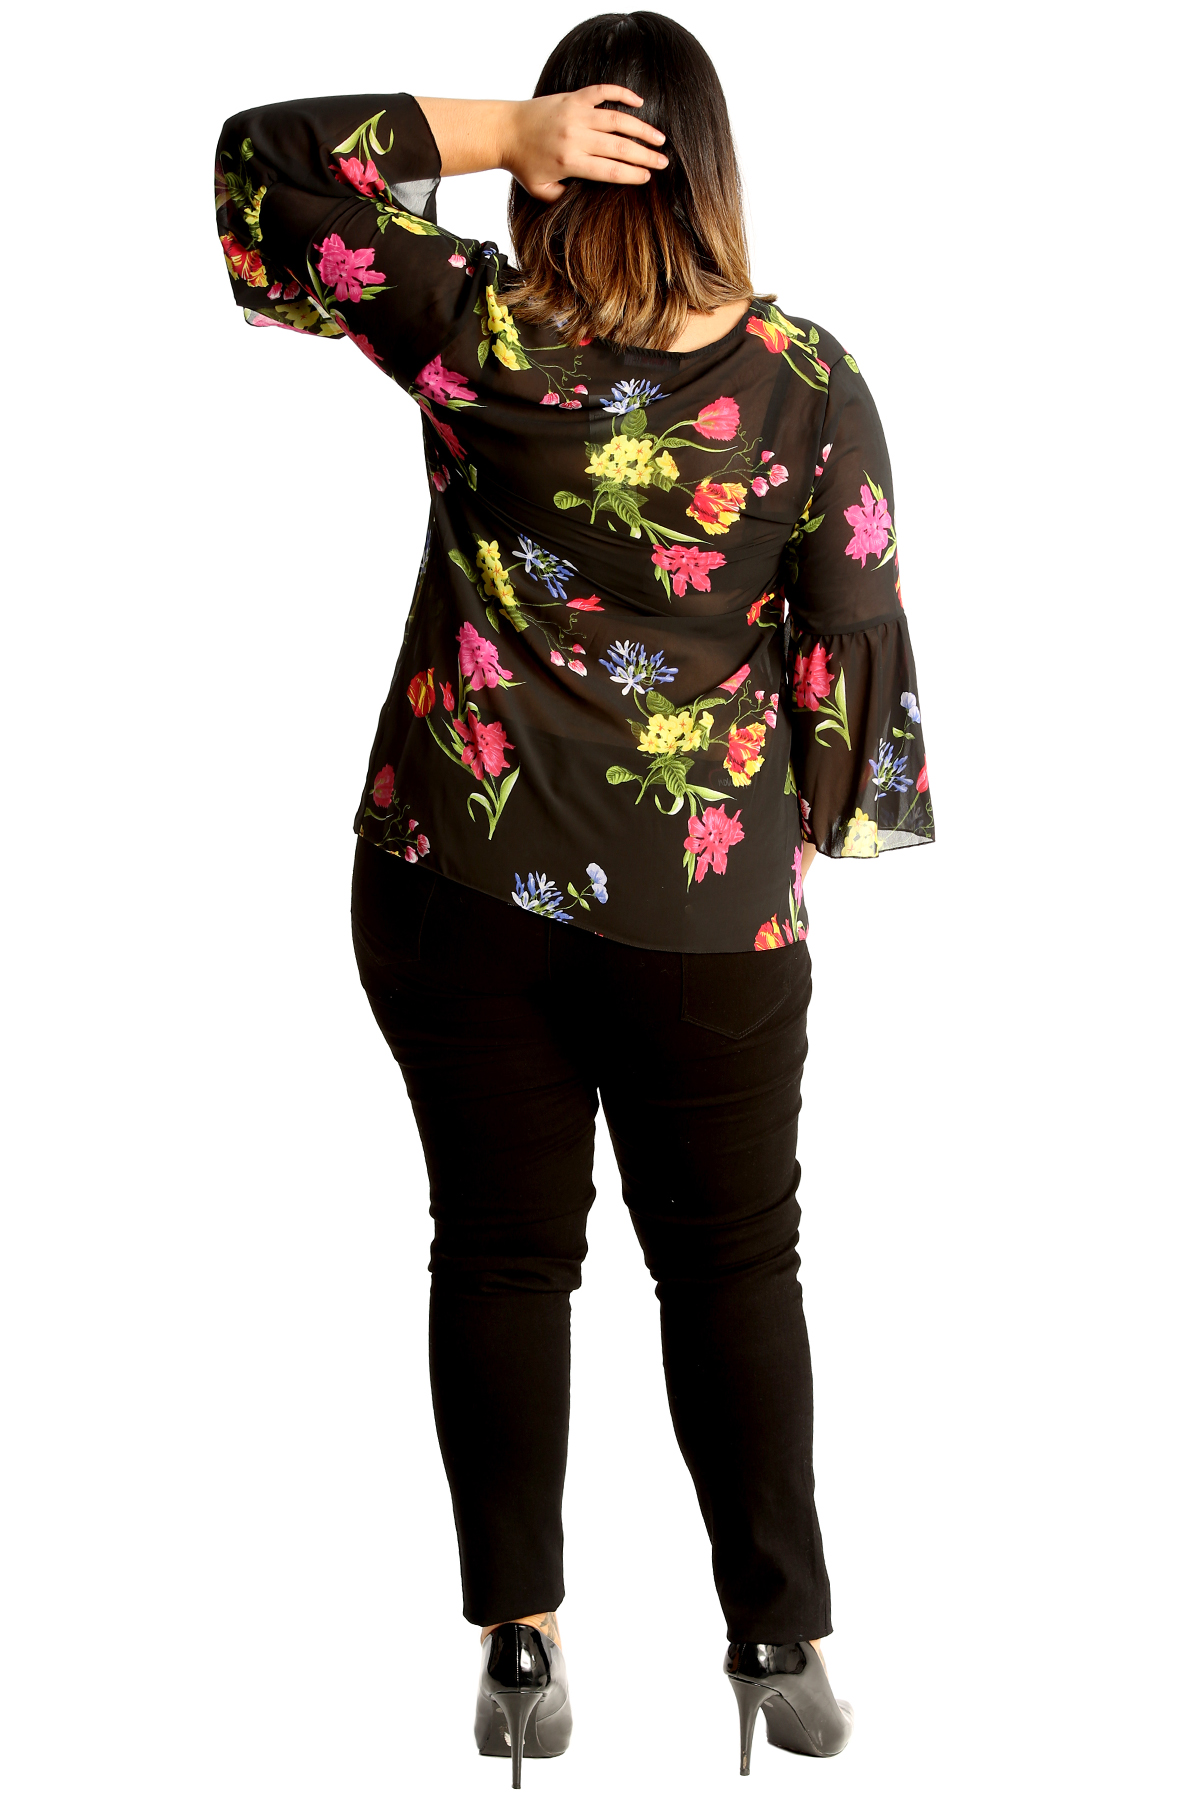 New Ladies Plus Size Top Womens Chiffon Floral Print Blouse Frill Sleeve Tunic